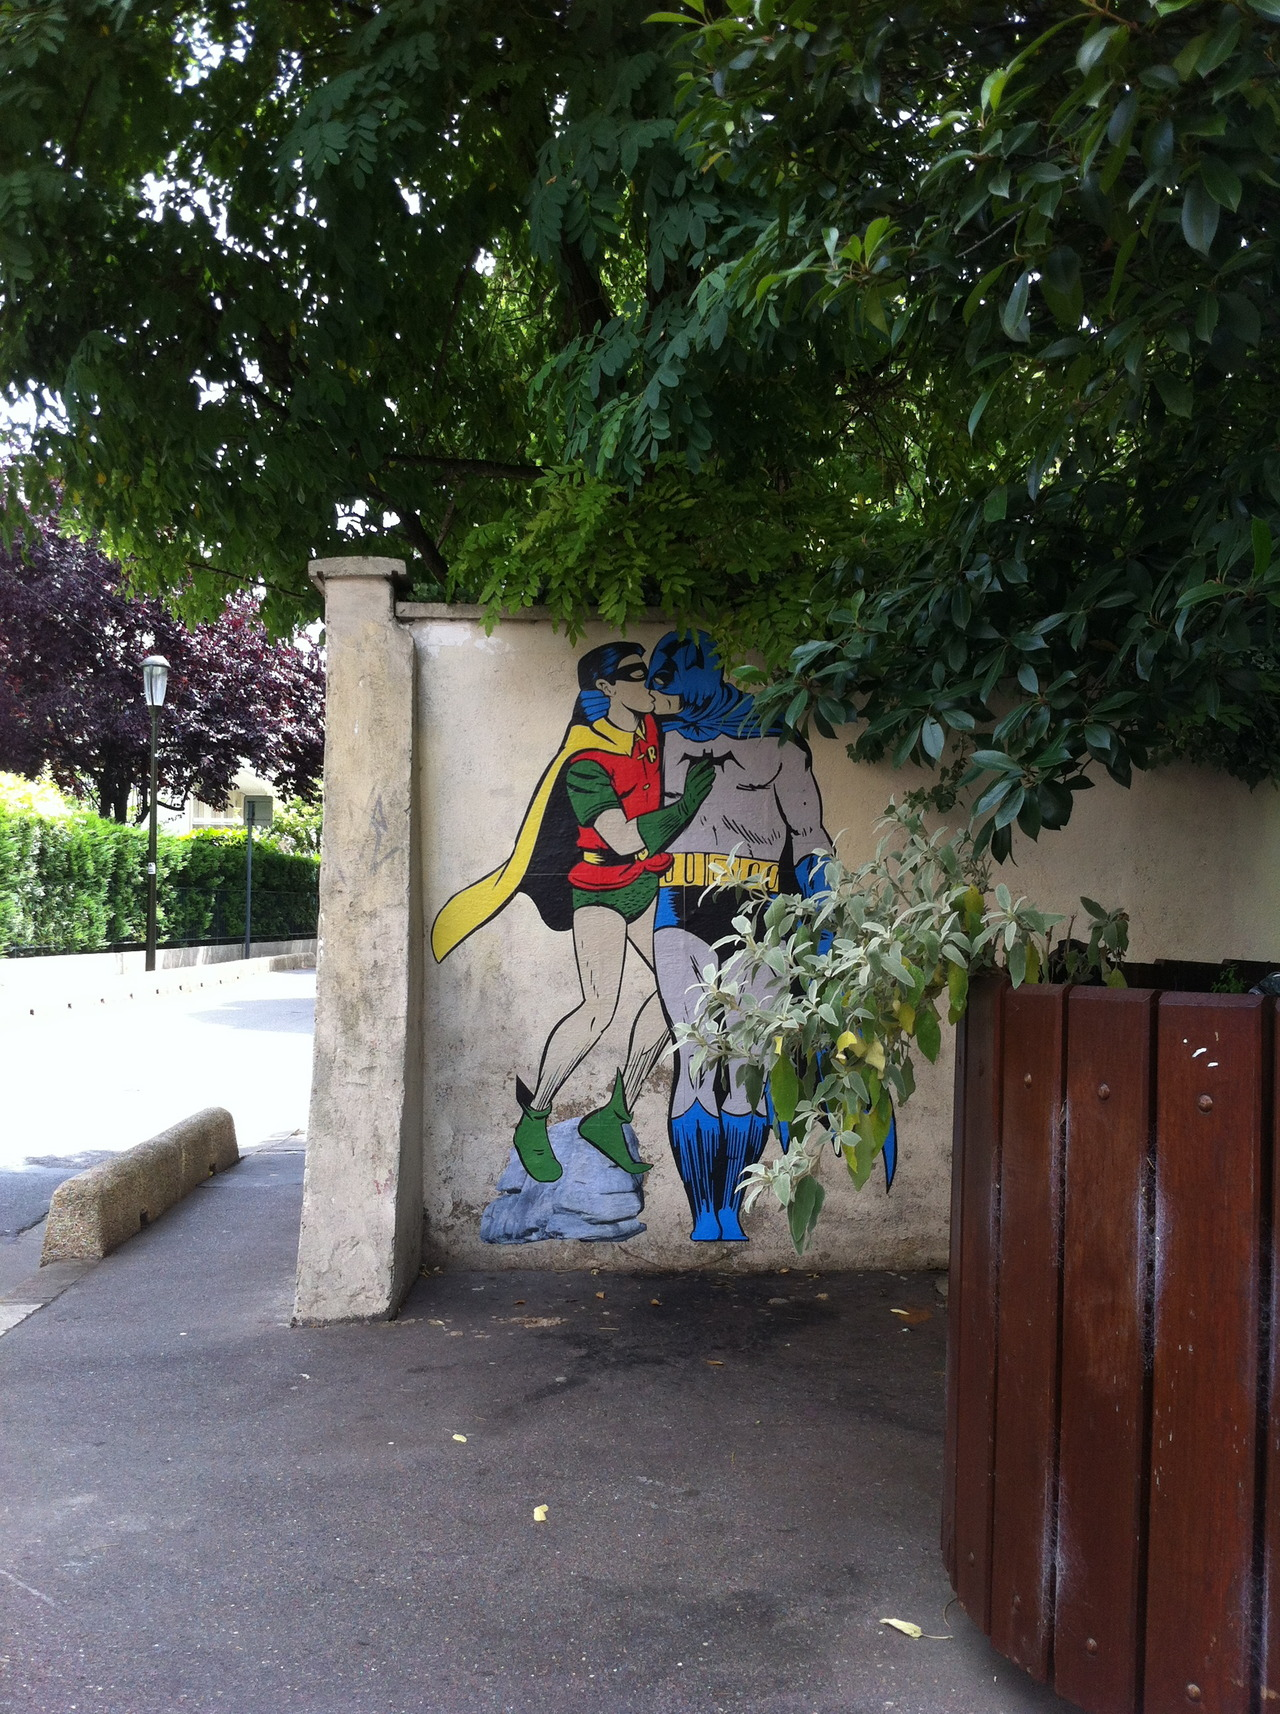 Batman and Robin kissing. By memeIRL in France 2